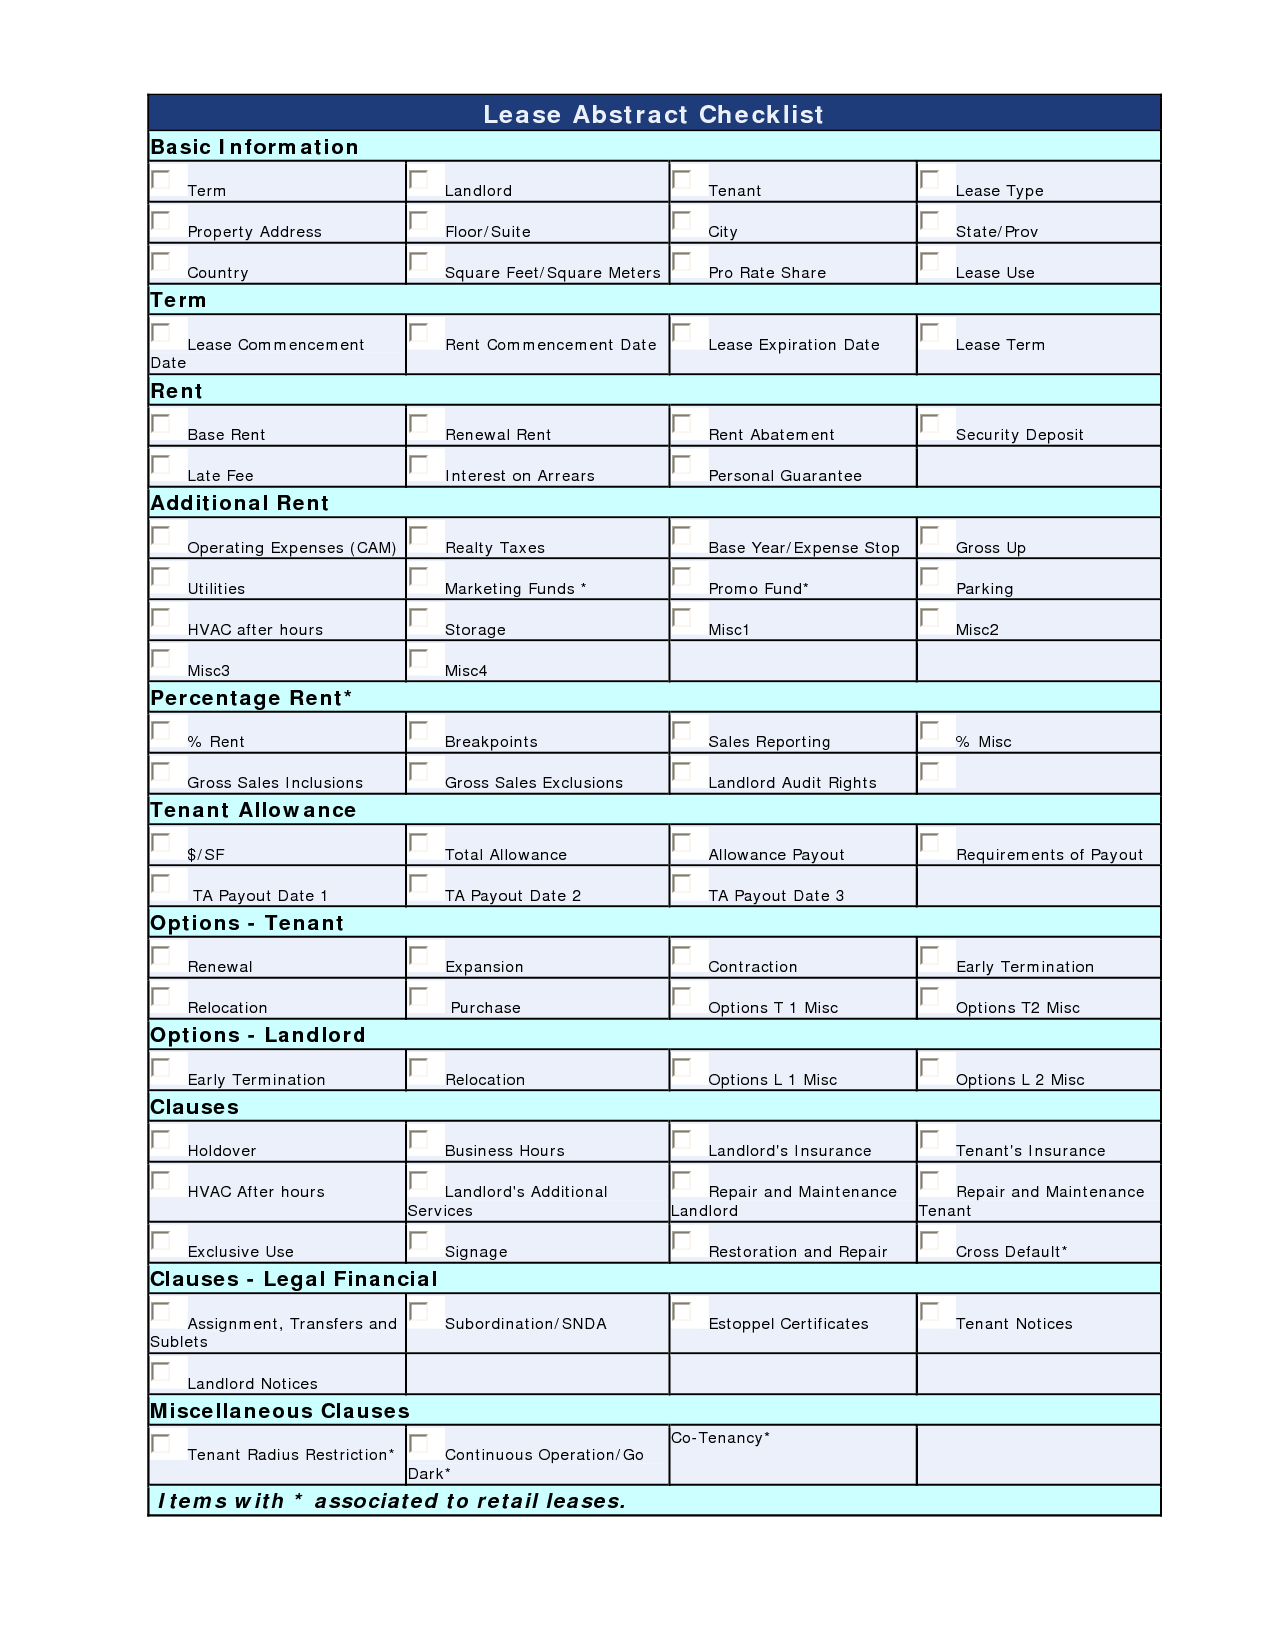 Lease Abstract Checklist MAeKwWzg | LCR_Lease Abstract | Pinterest